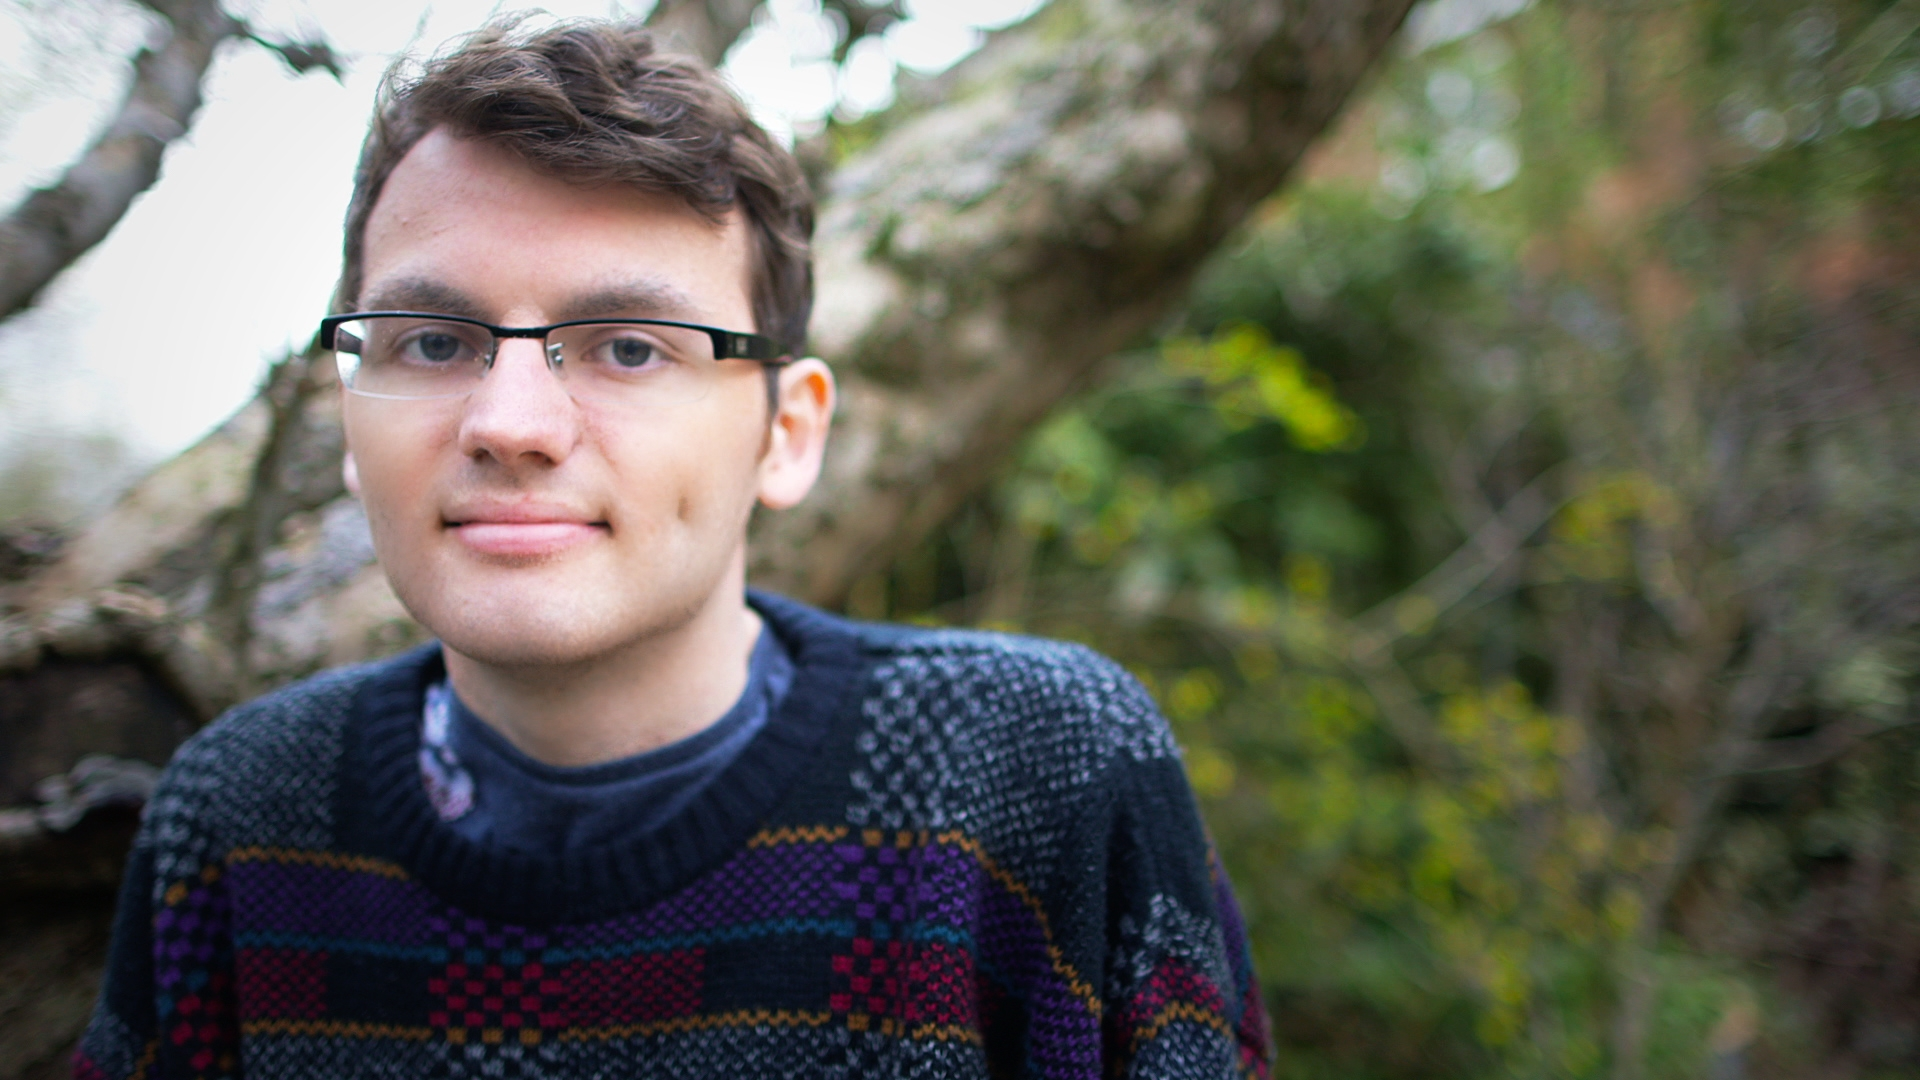 Dudley charity concert will remember Stephen Sutton